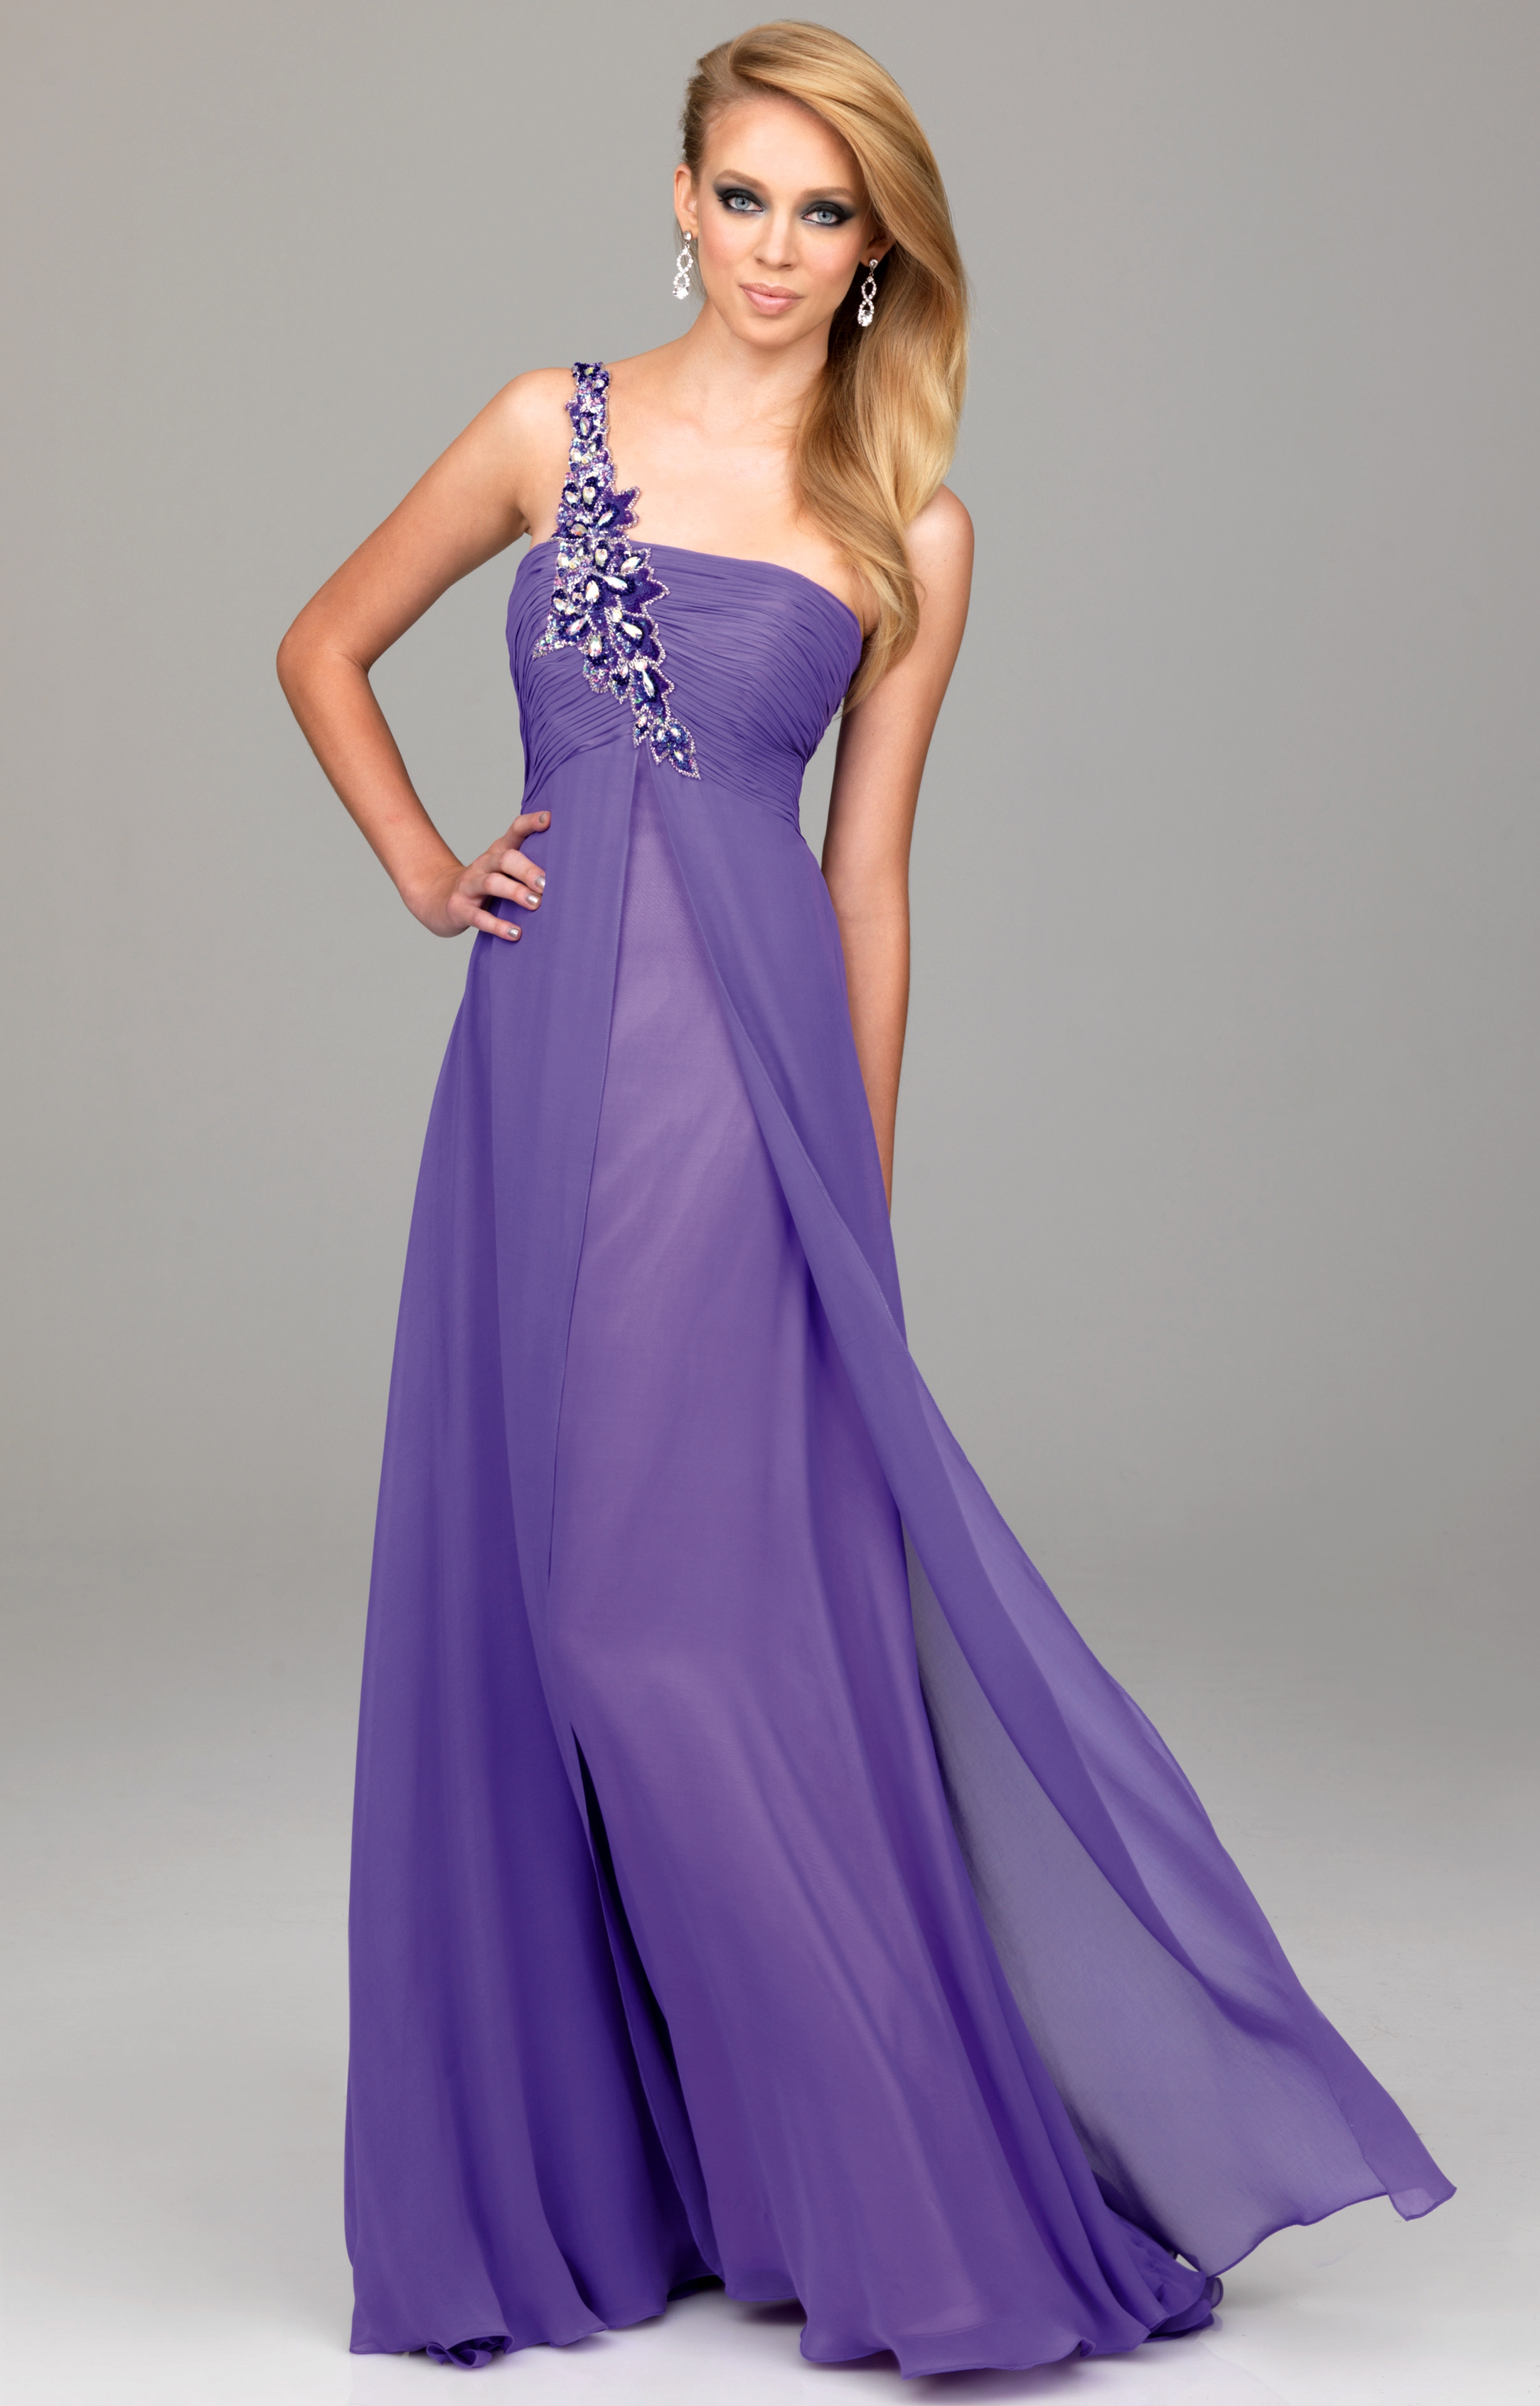 Beautiful dress for evening party